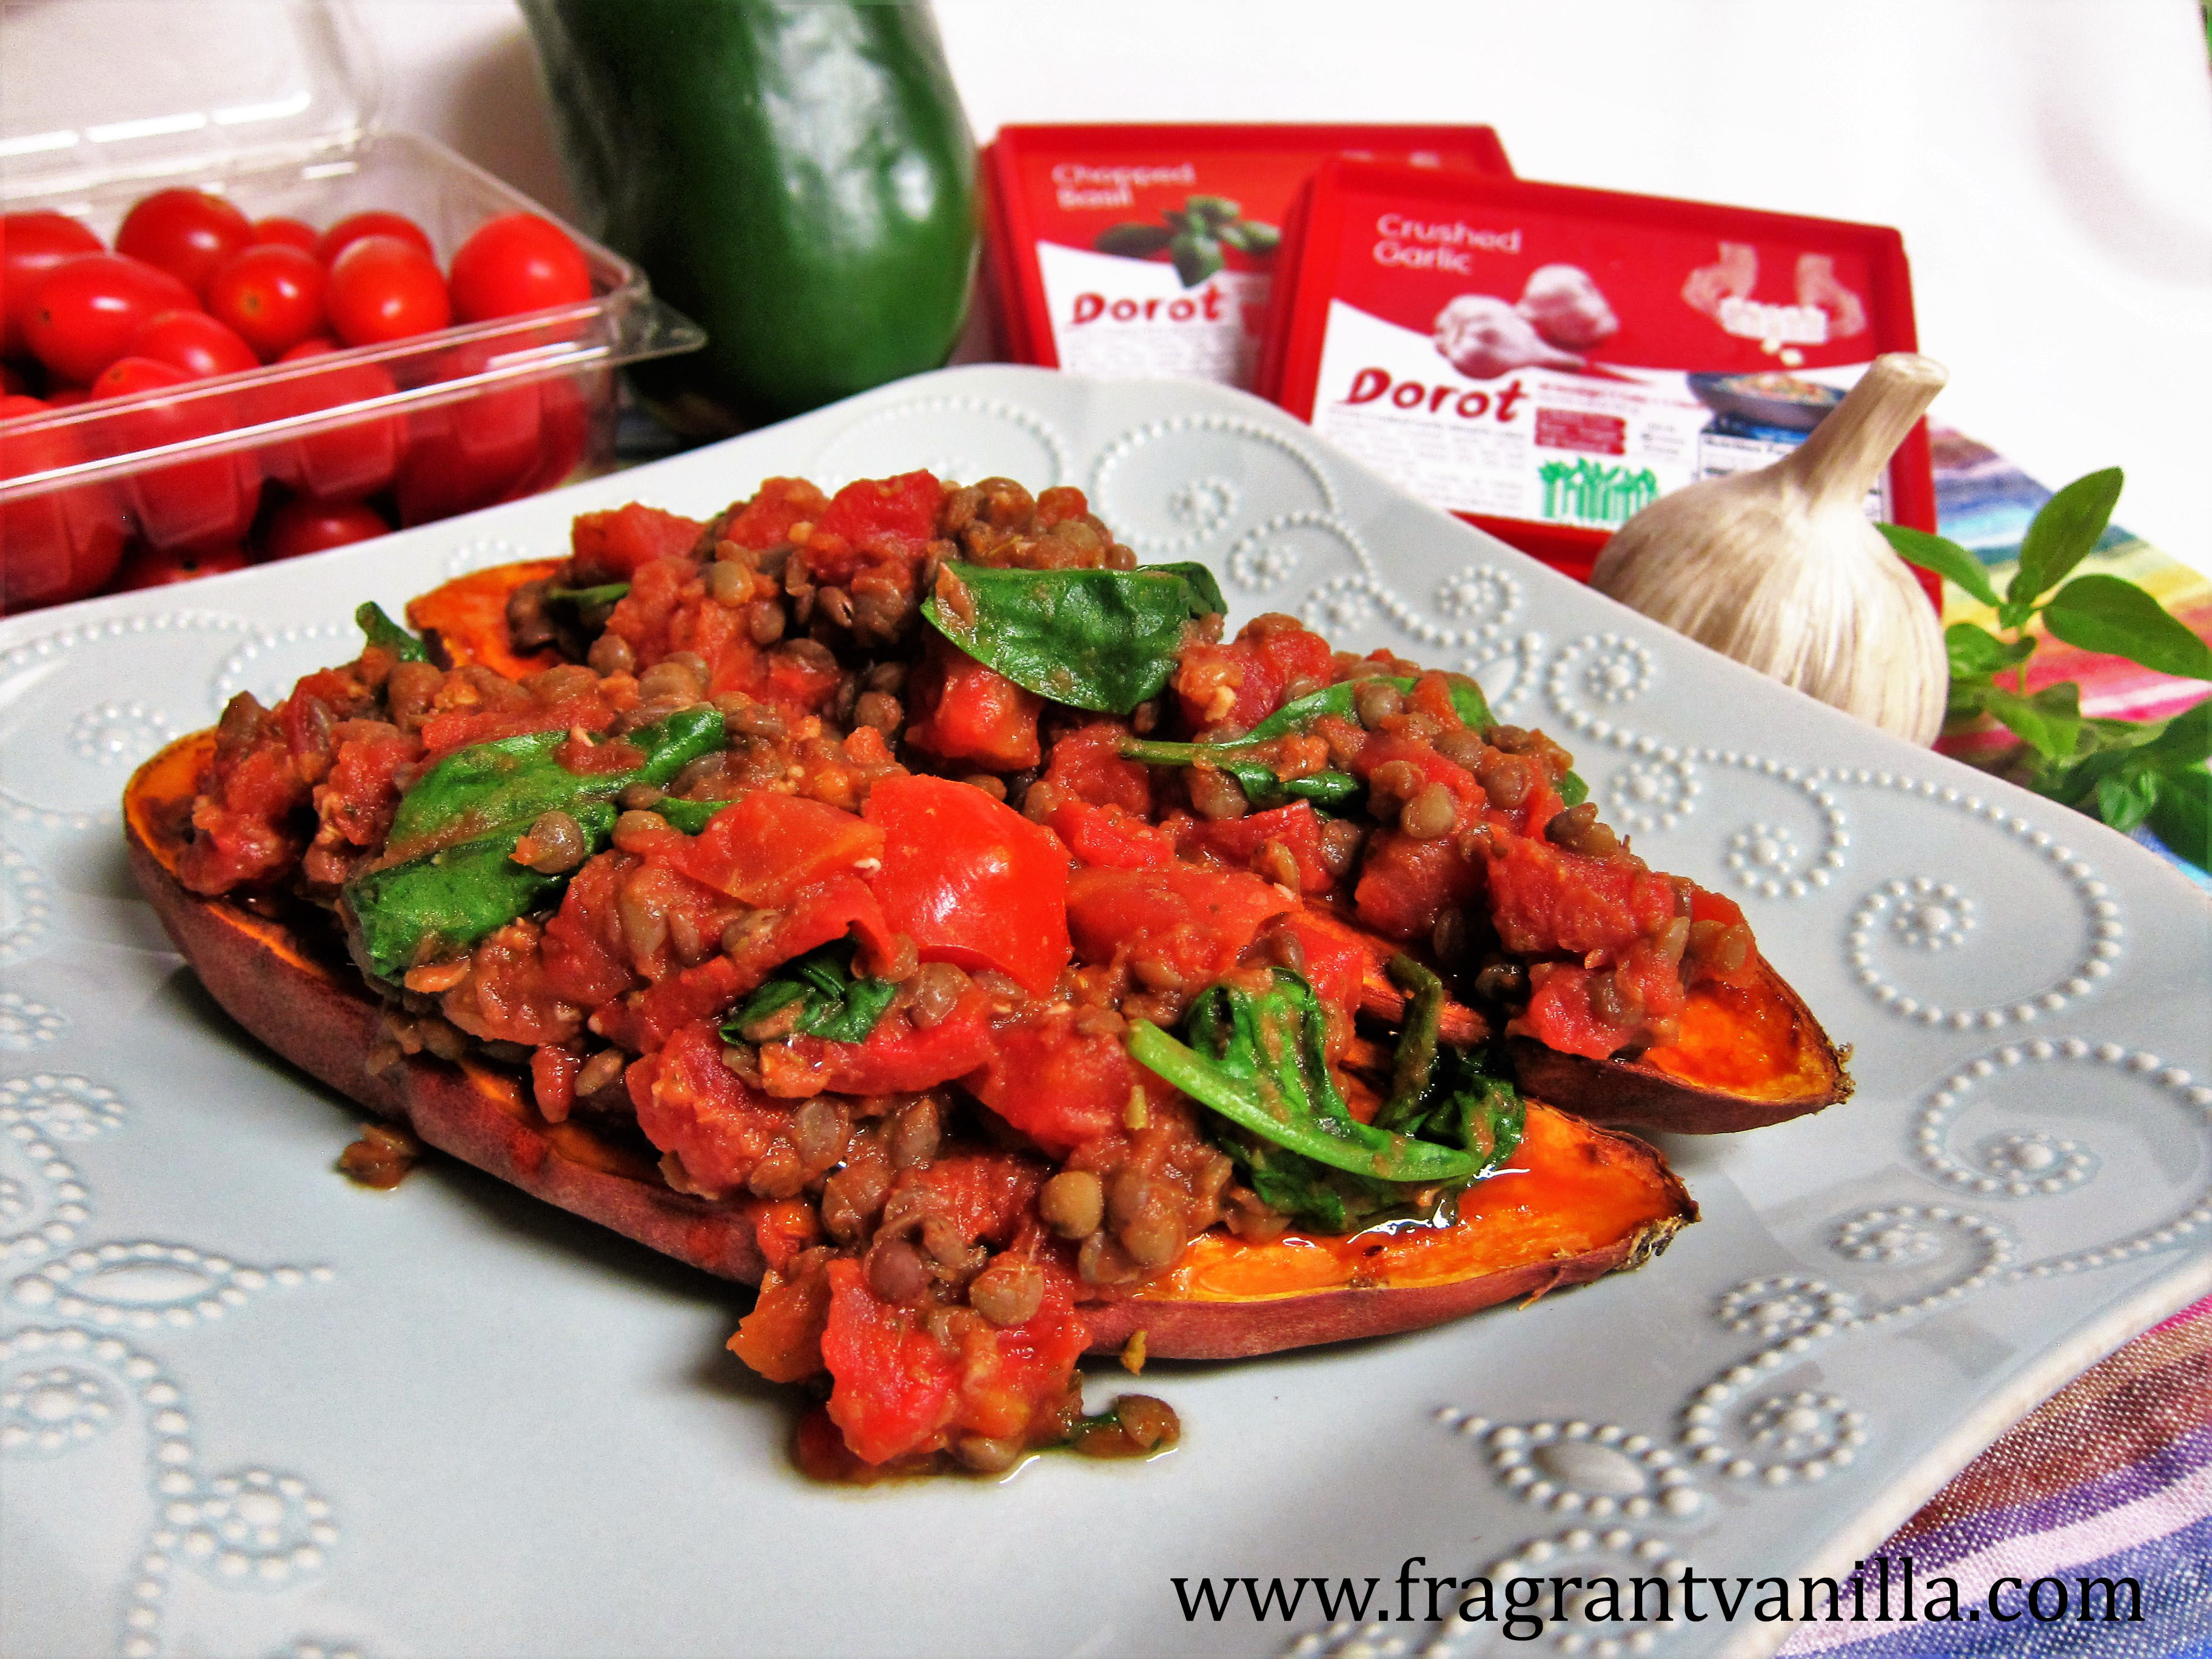 Cooking with Dorot Basil and Garlic and Italian Stuffed Roasted Sweet Potatoes